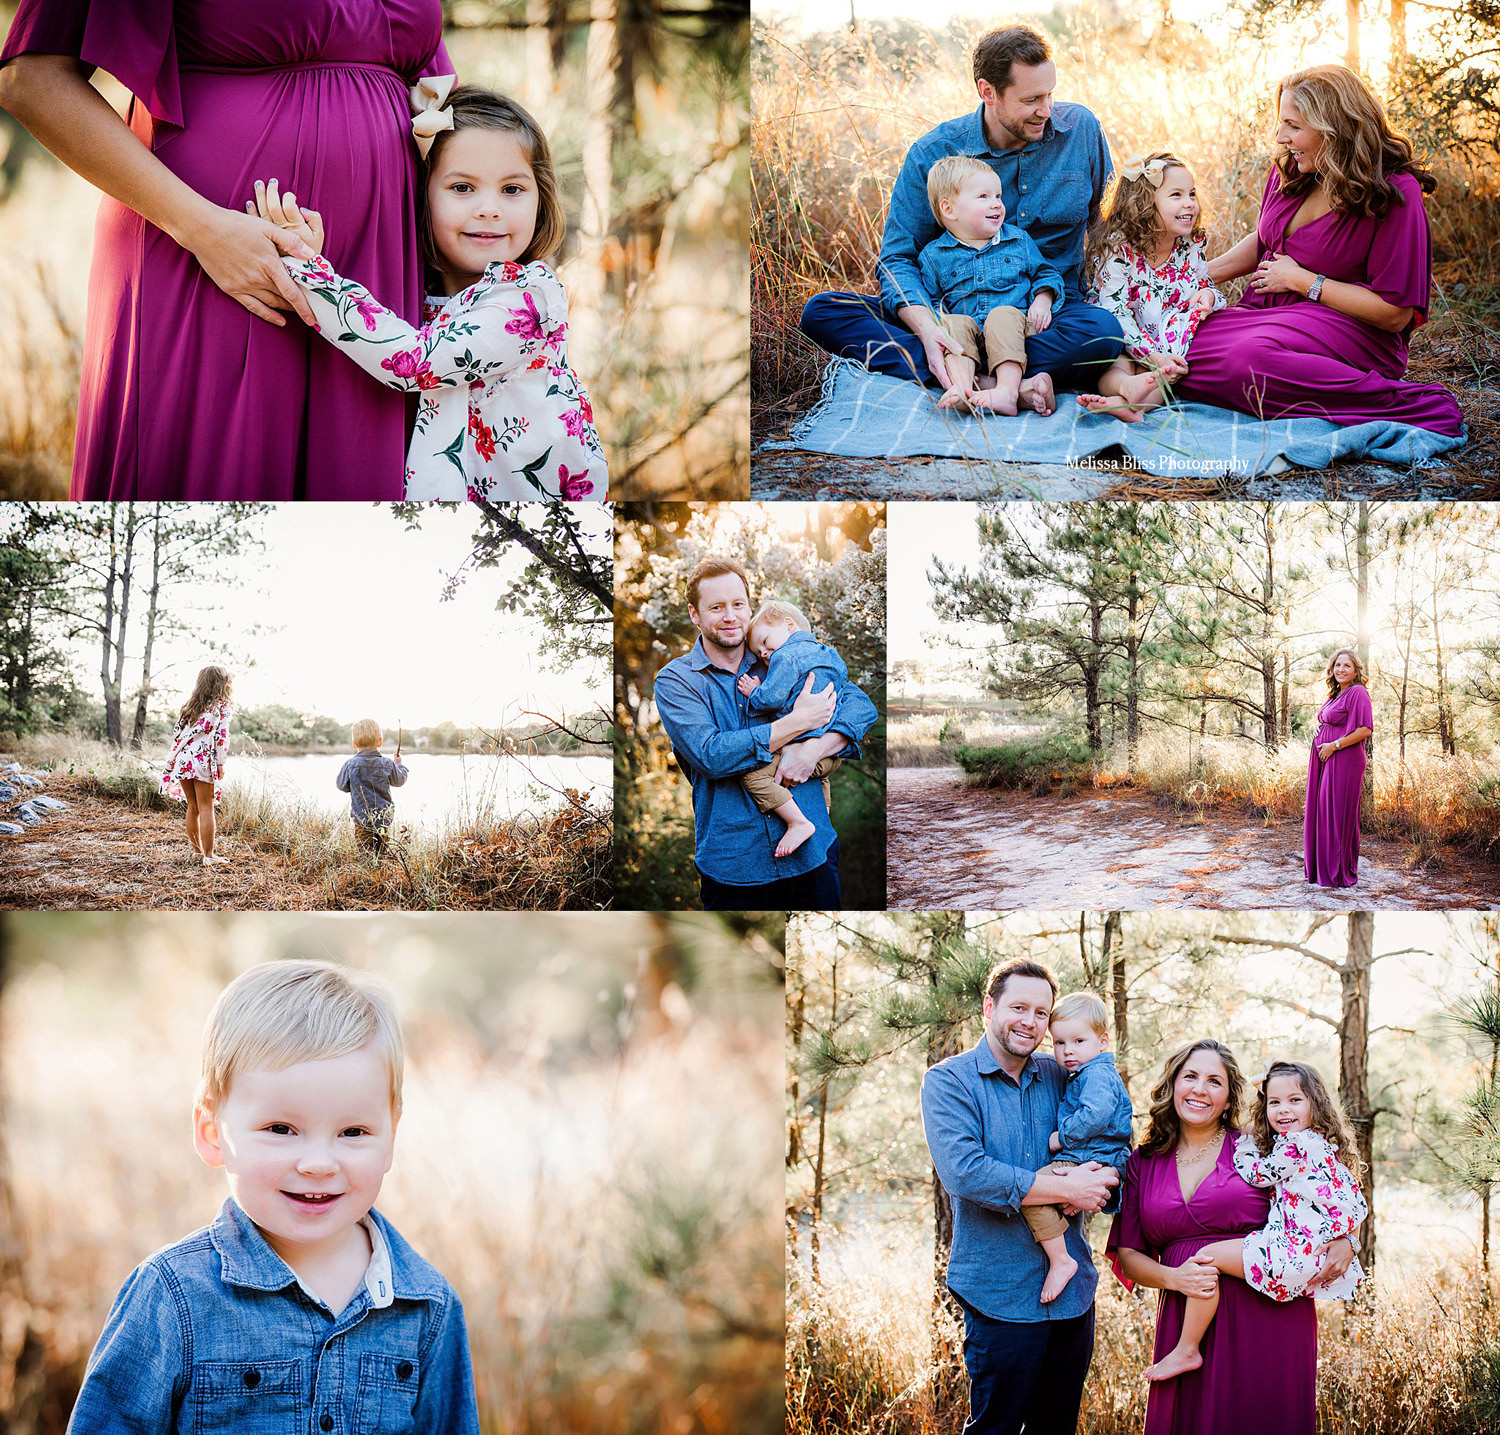 pleasure-house-point-virginia-beach-maternity-family-photos-melissa-bliss-photography.jpg